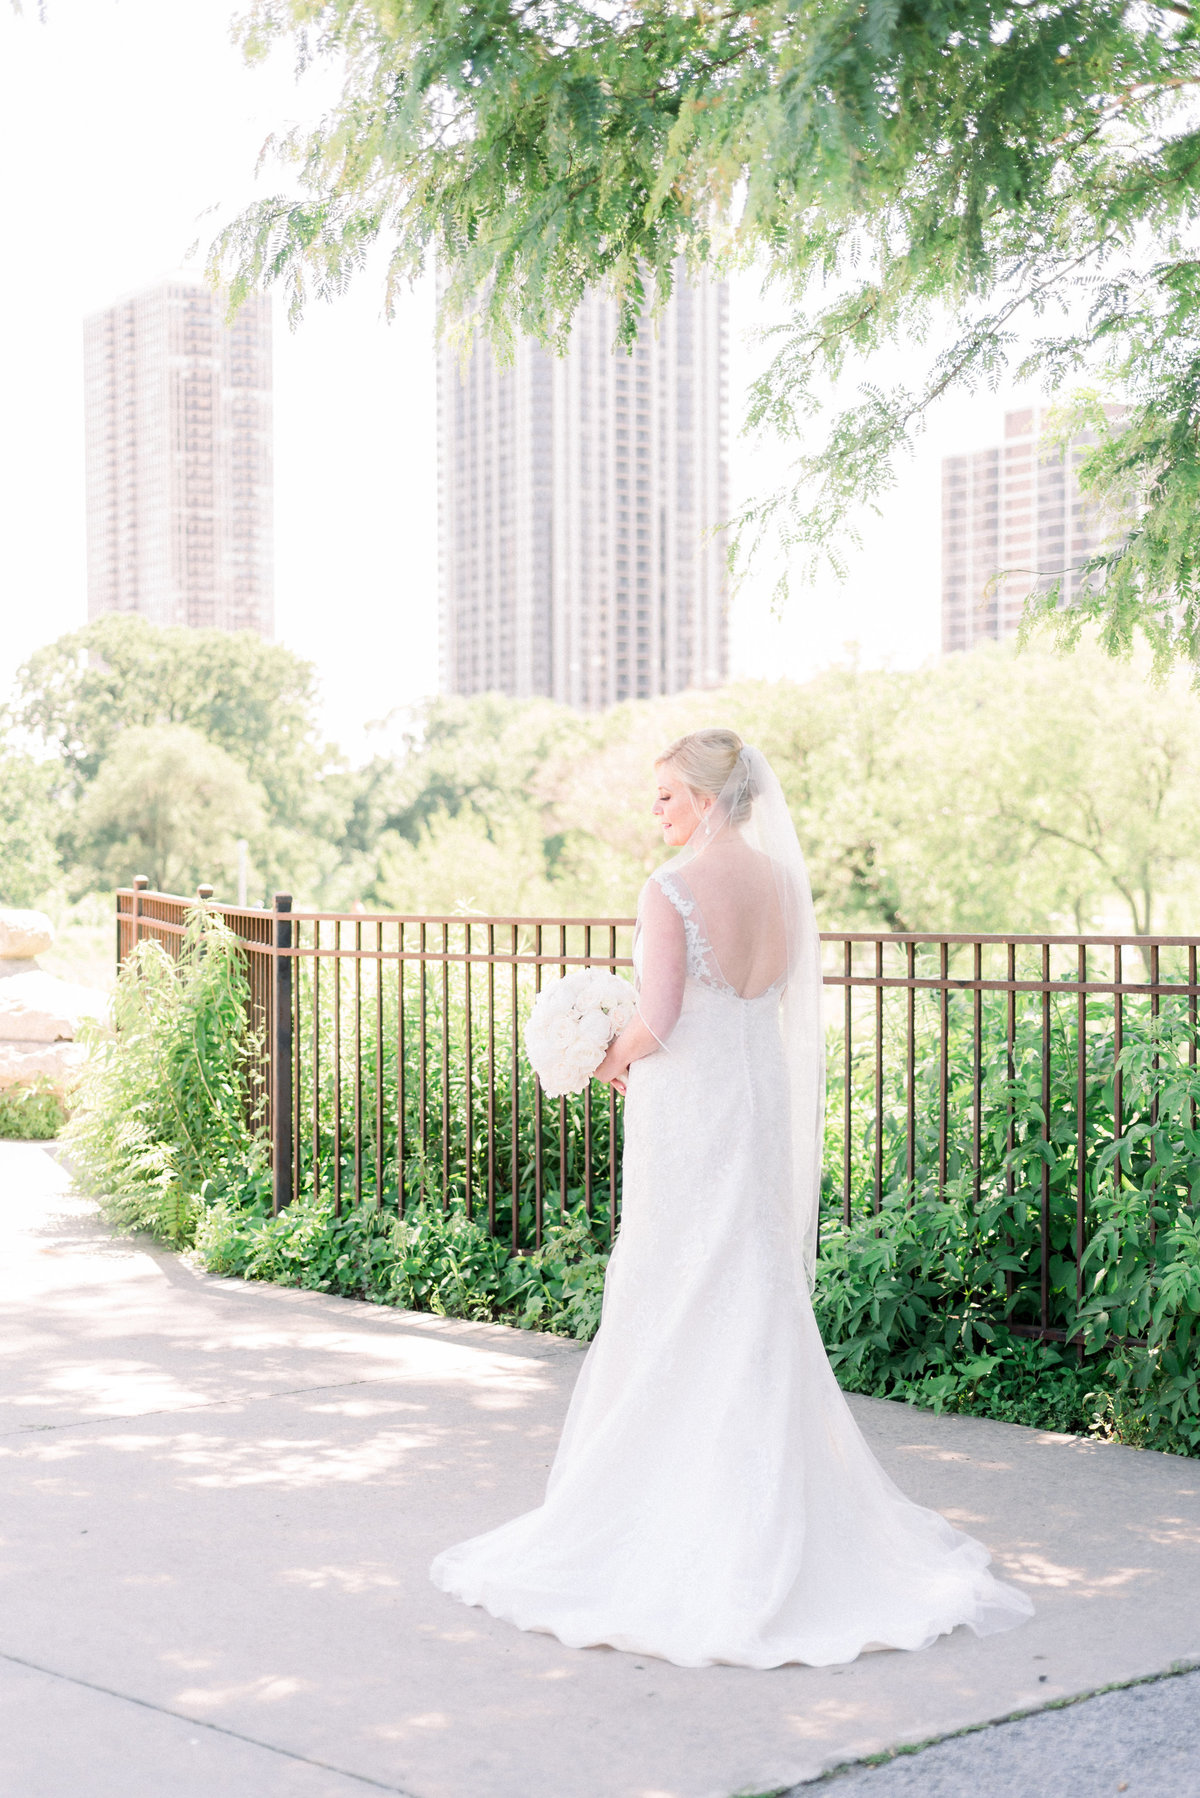 TiffaneyChildsPhotography-ChicagoWeddingPhotographer-Christine+Patrick-MundeleinAuditoriumWedding-BridalPortraits-2